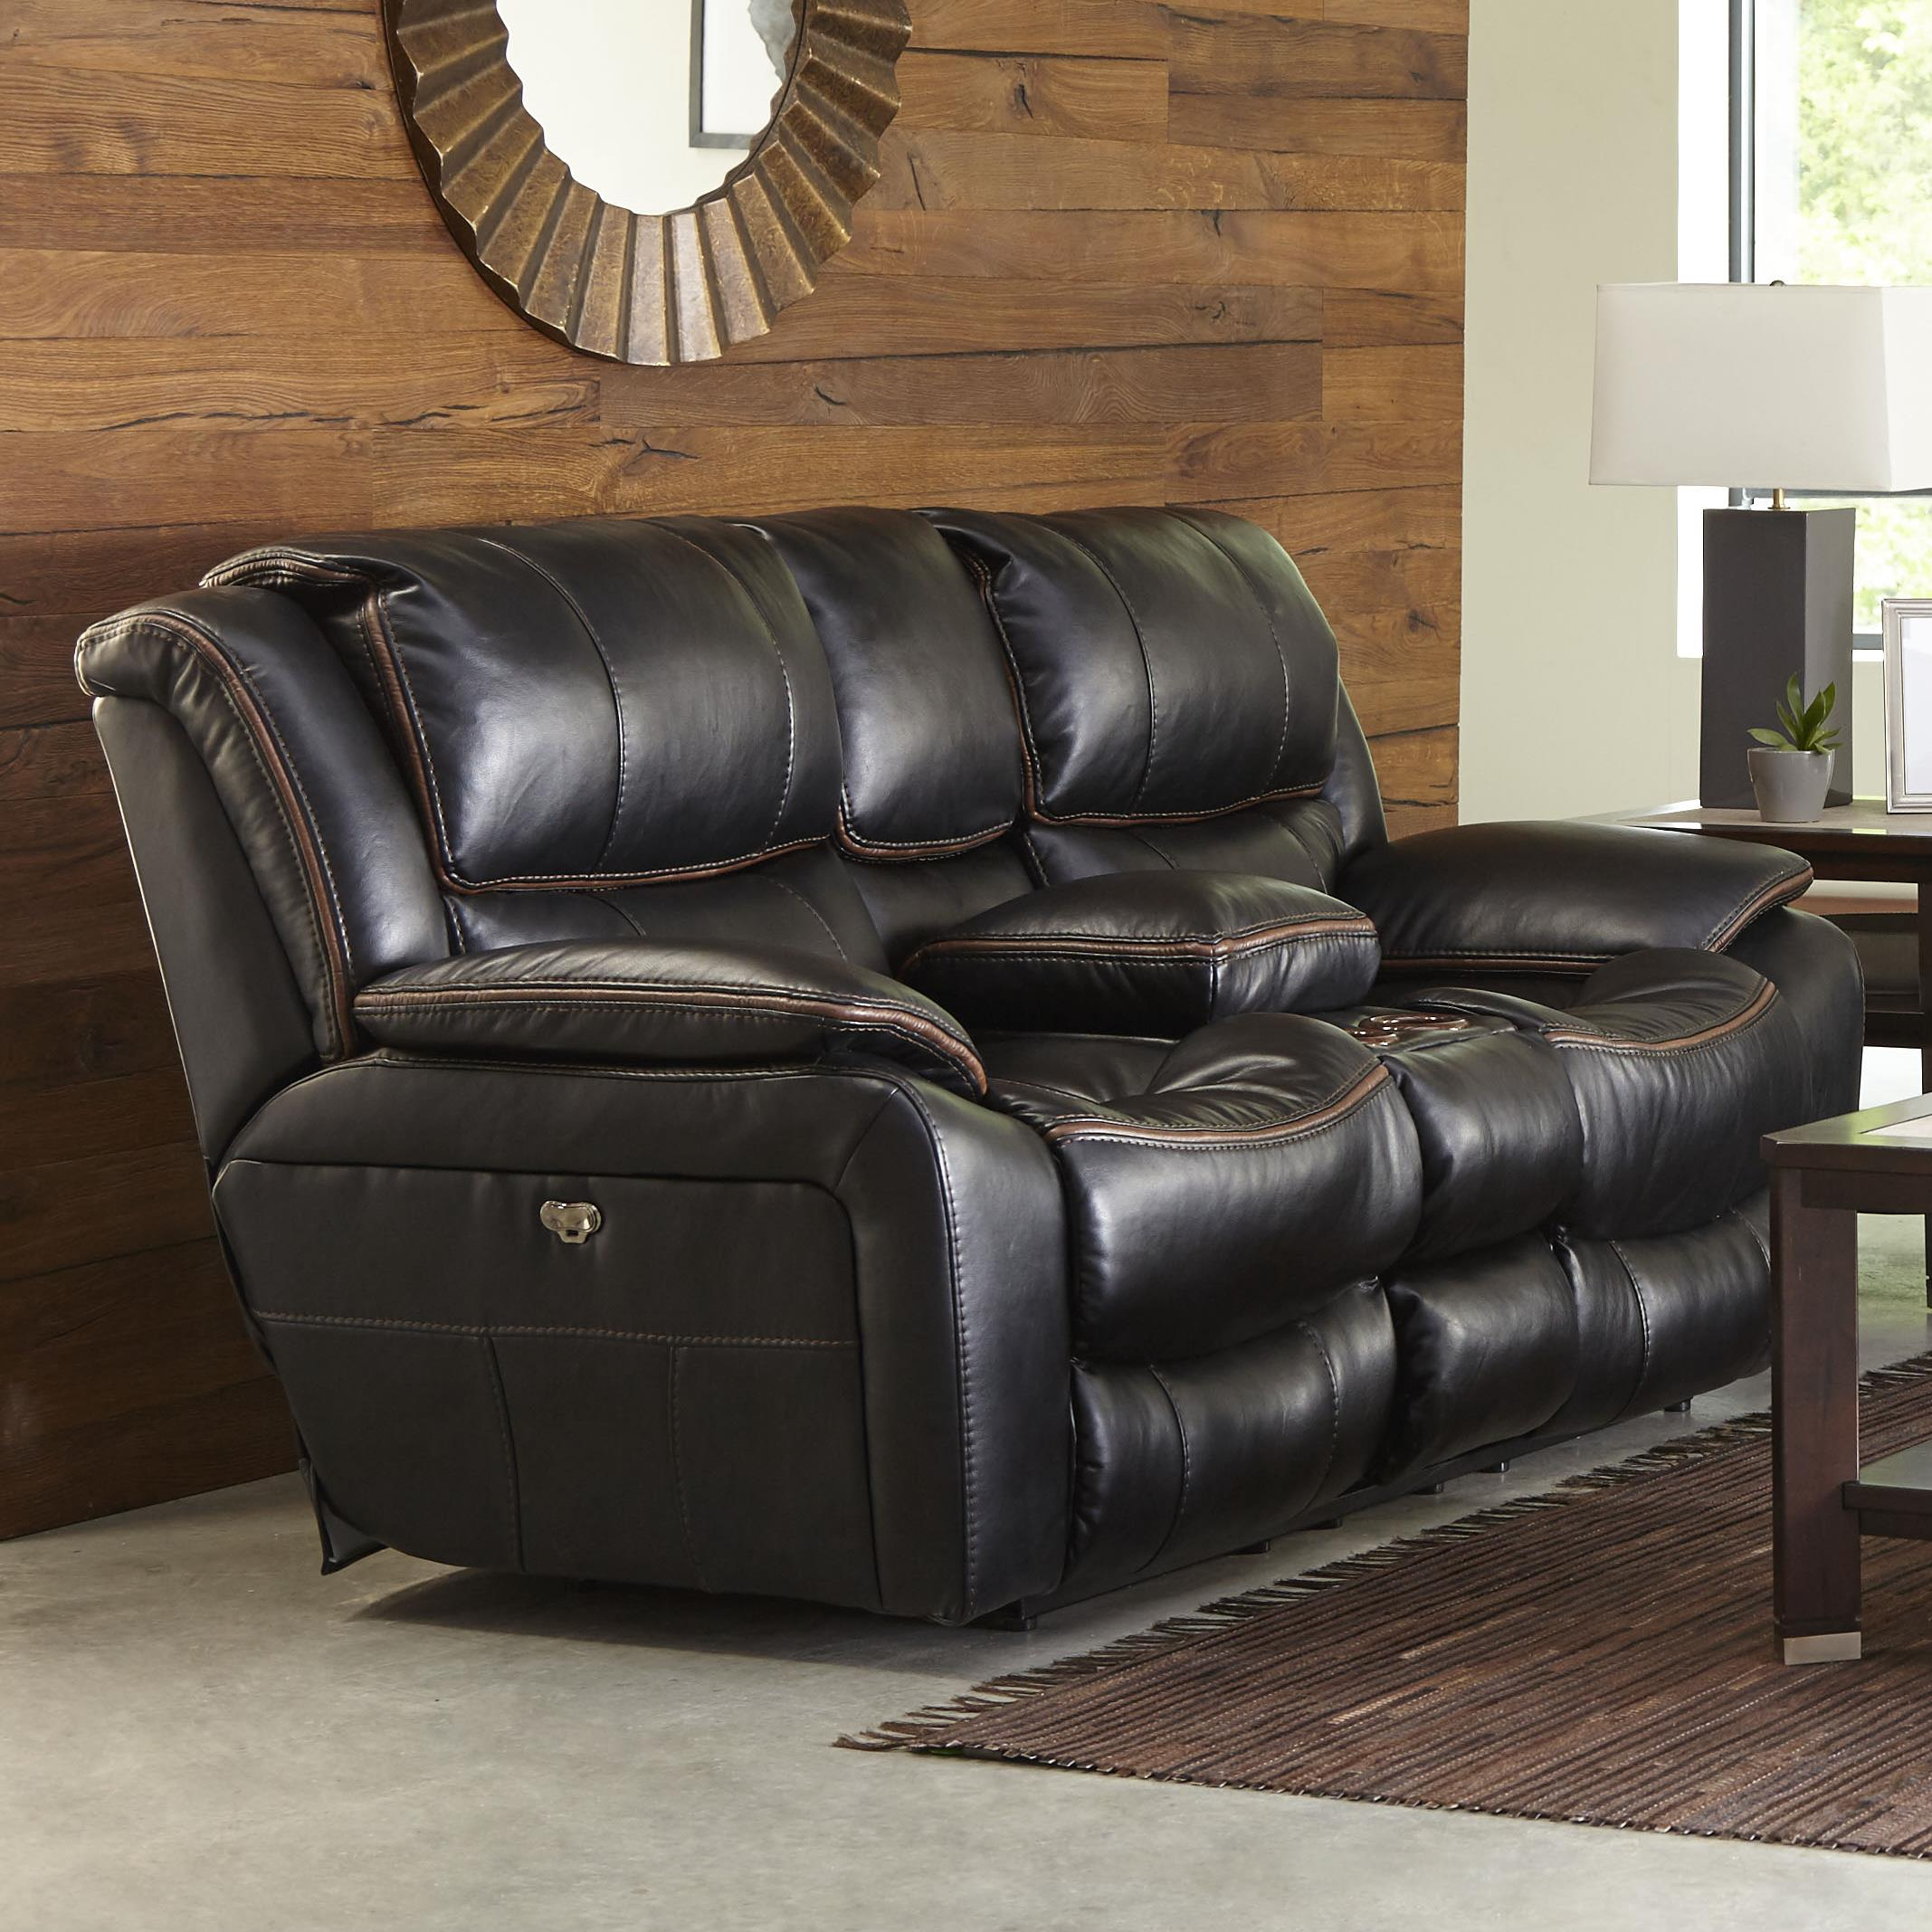 Power reclining loveseat with usb port cup holders and storage console by catnapper wolf and Loveseat with cup holders